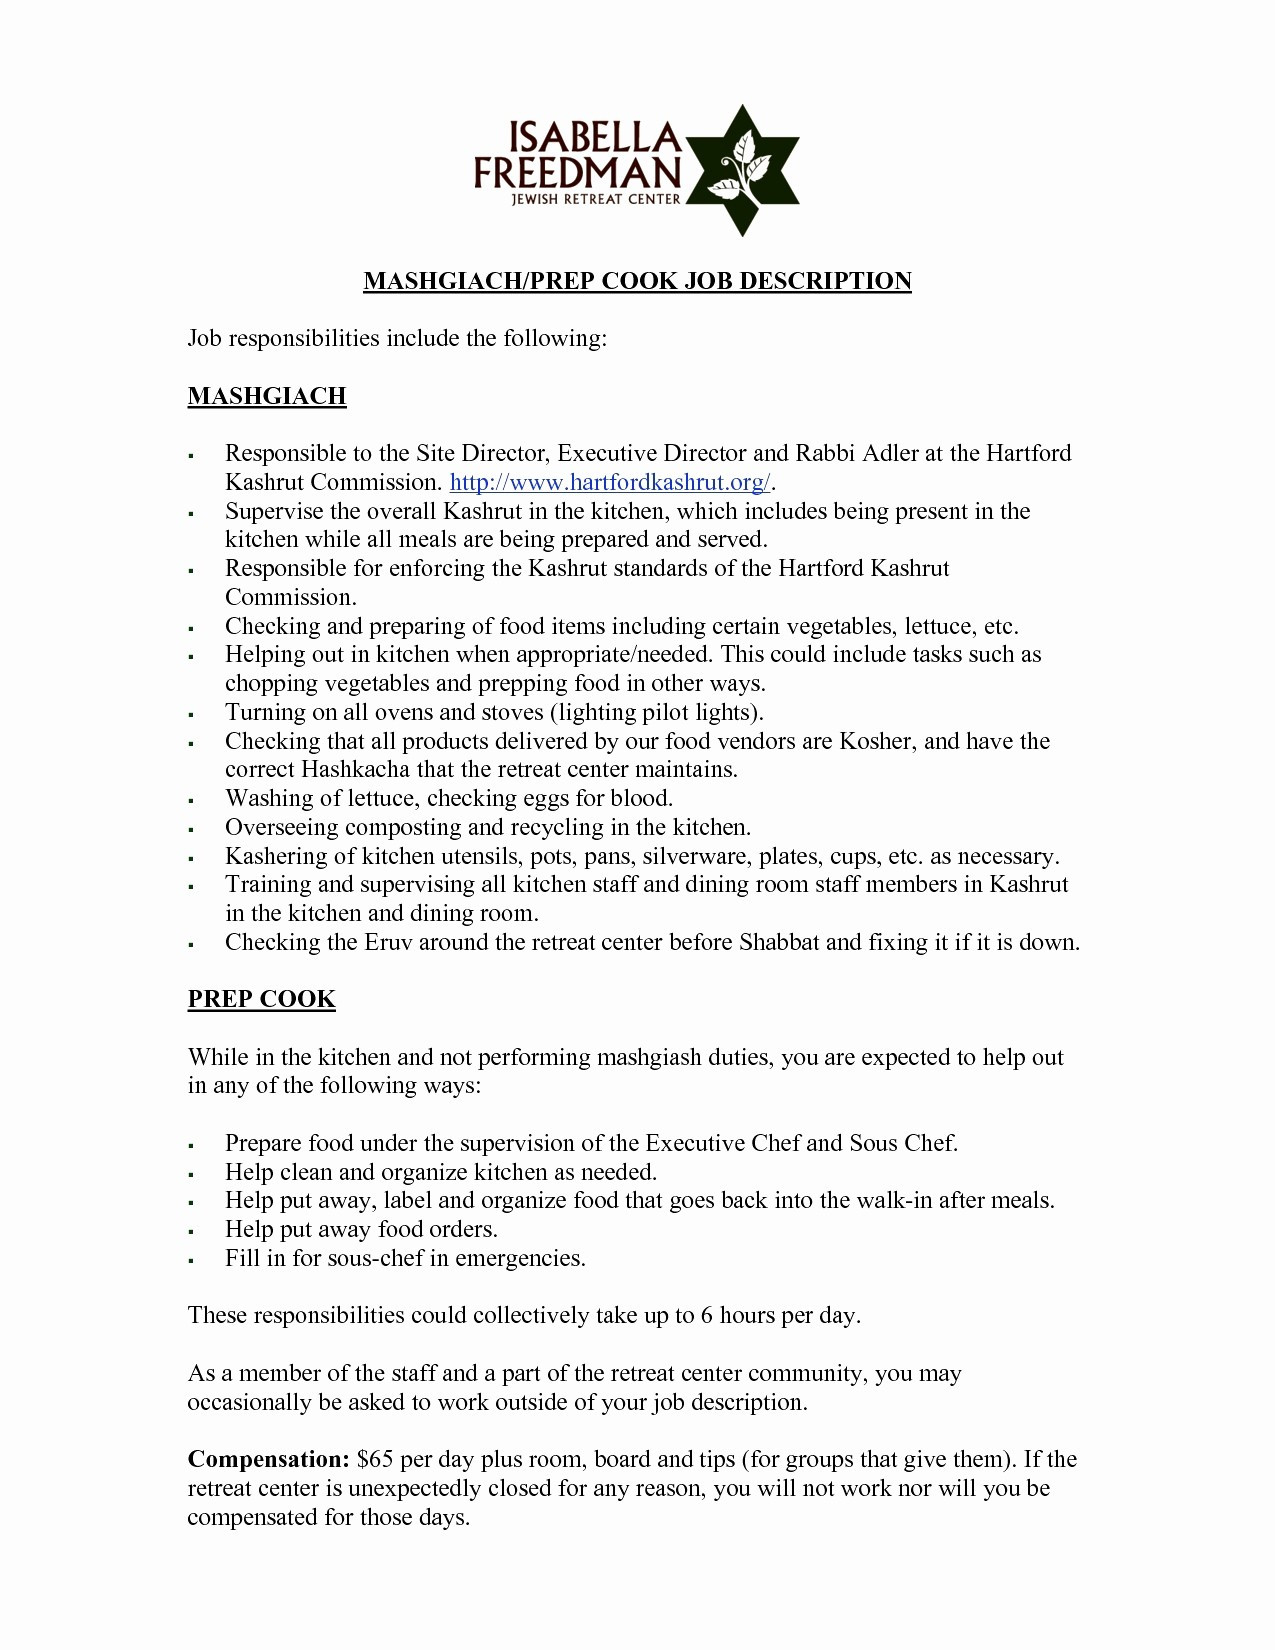 customer service description for resume example-Customer Service Executive Job Description Resume Reference Resume Customer Services Unique Examples Resumes Ecologist Resume 0d 11-a